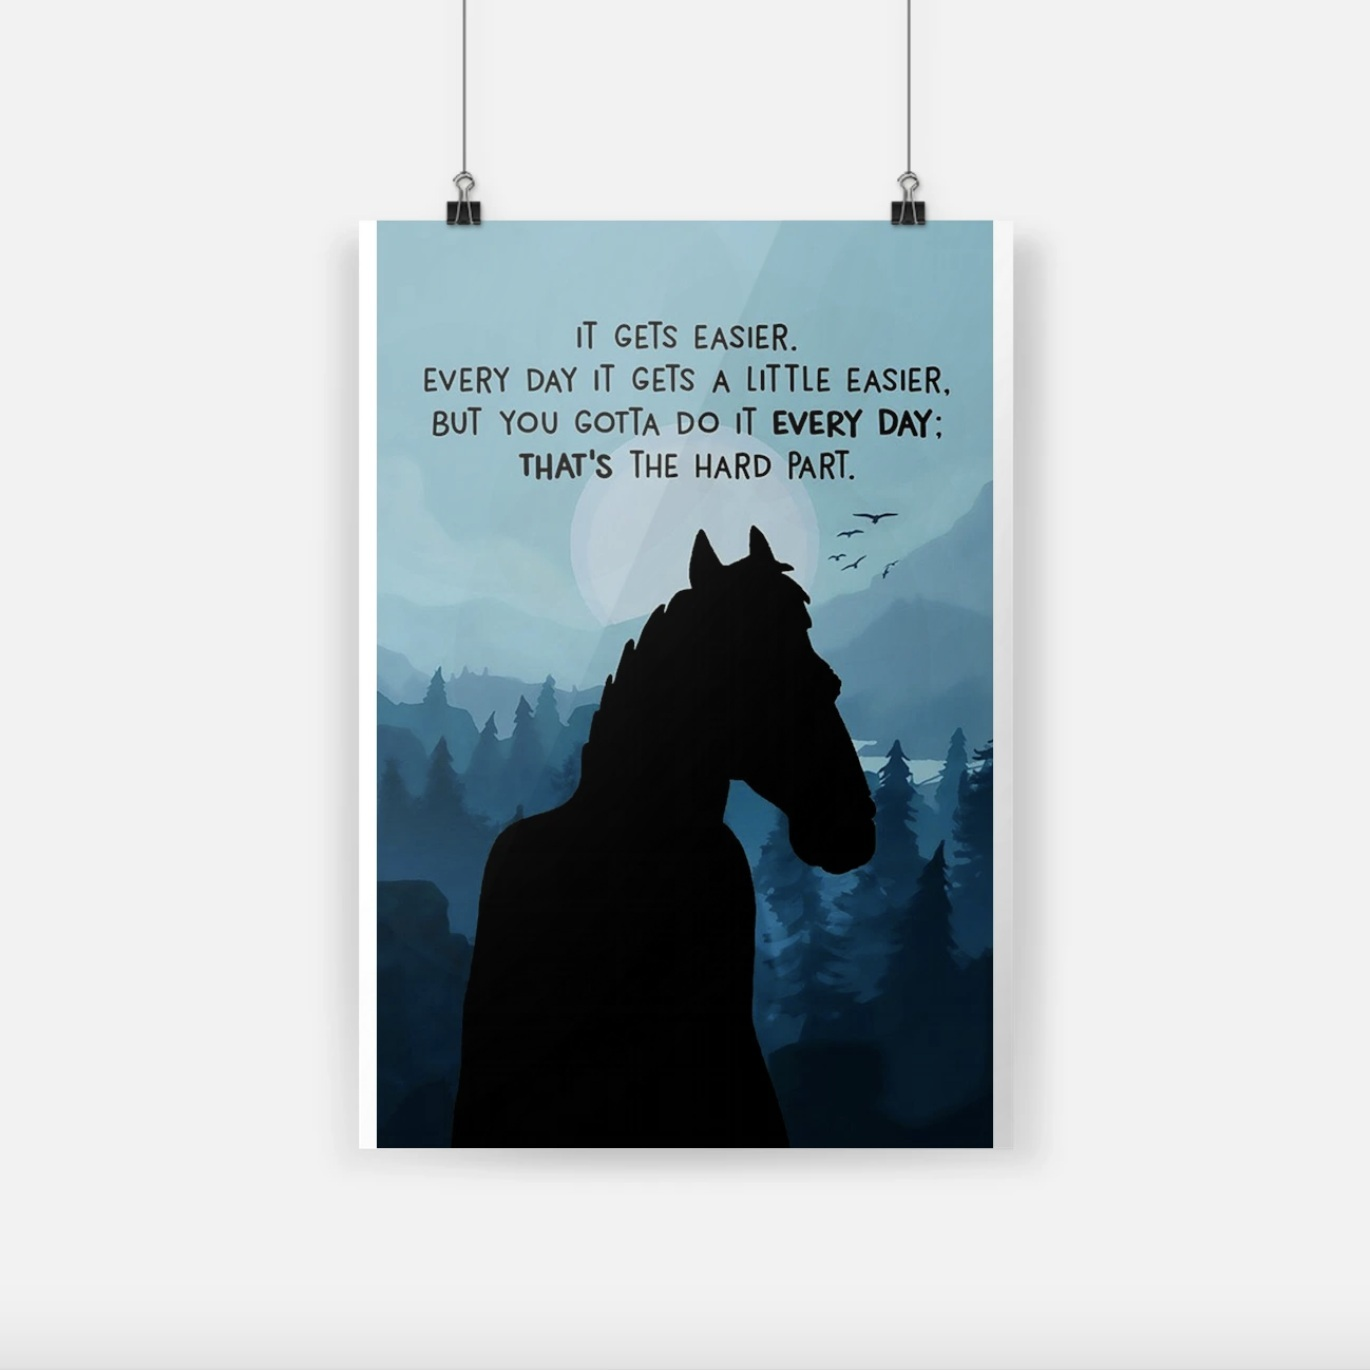 BoJack Horseman it gets easier everyday it gets a little easier small poster